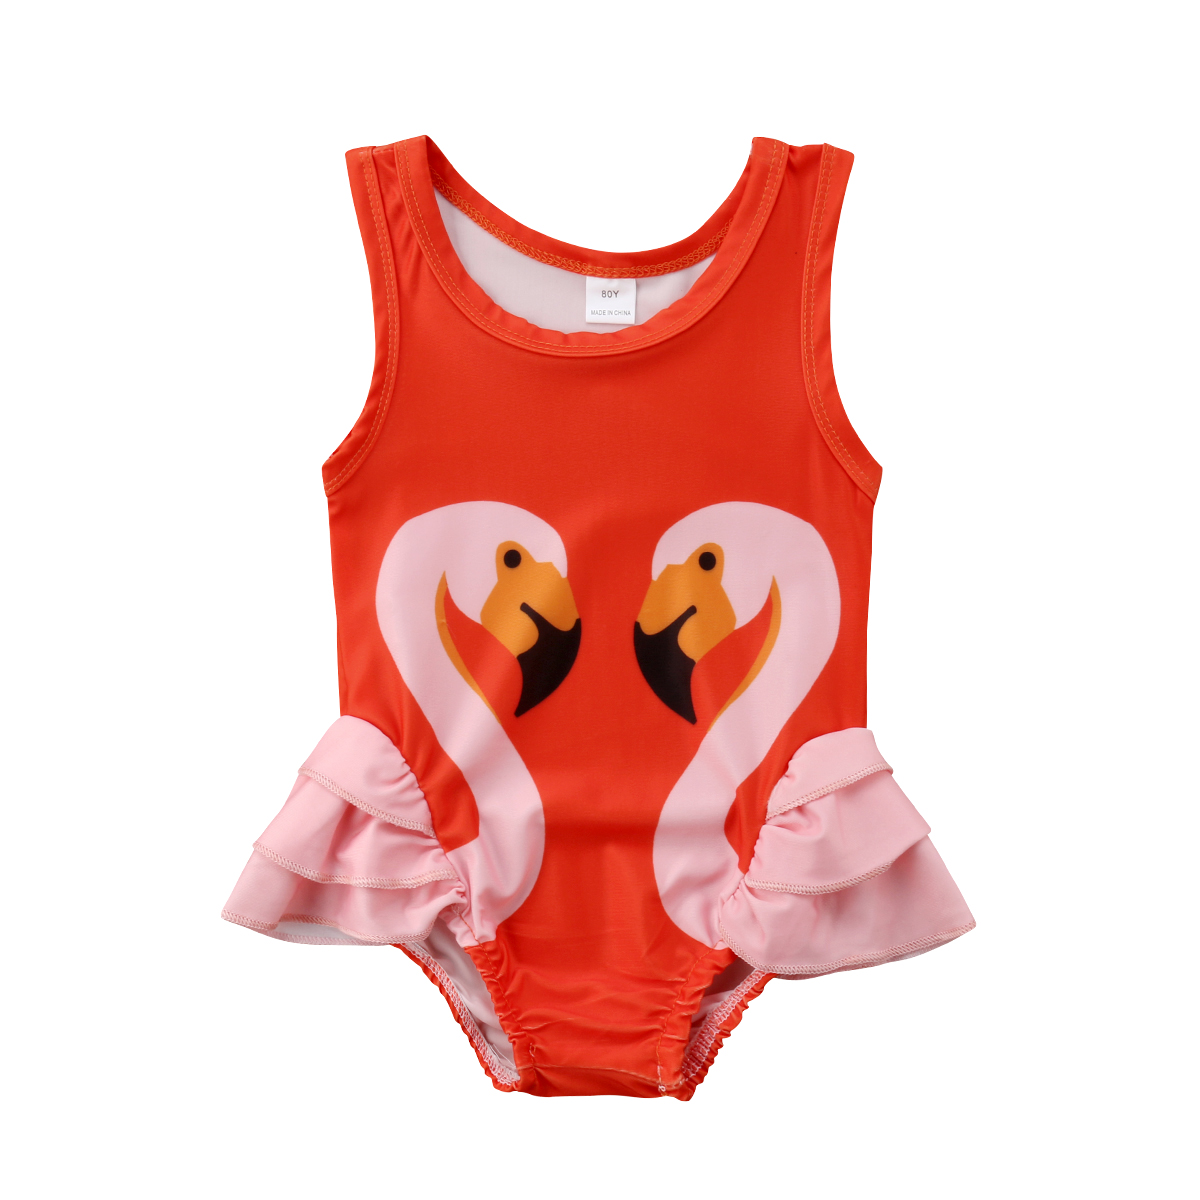 Baby Girl Kids Swan Pattern Romper Pink Orange Swimming suit Jumpsuit Badysuit Clothes